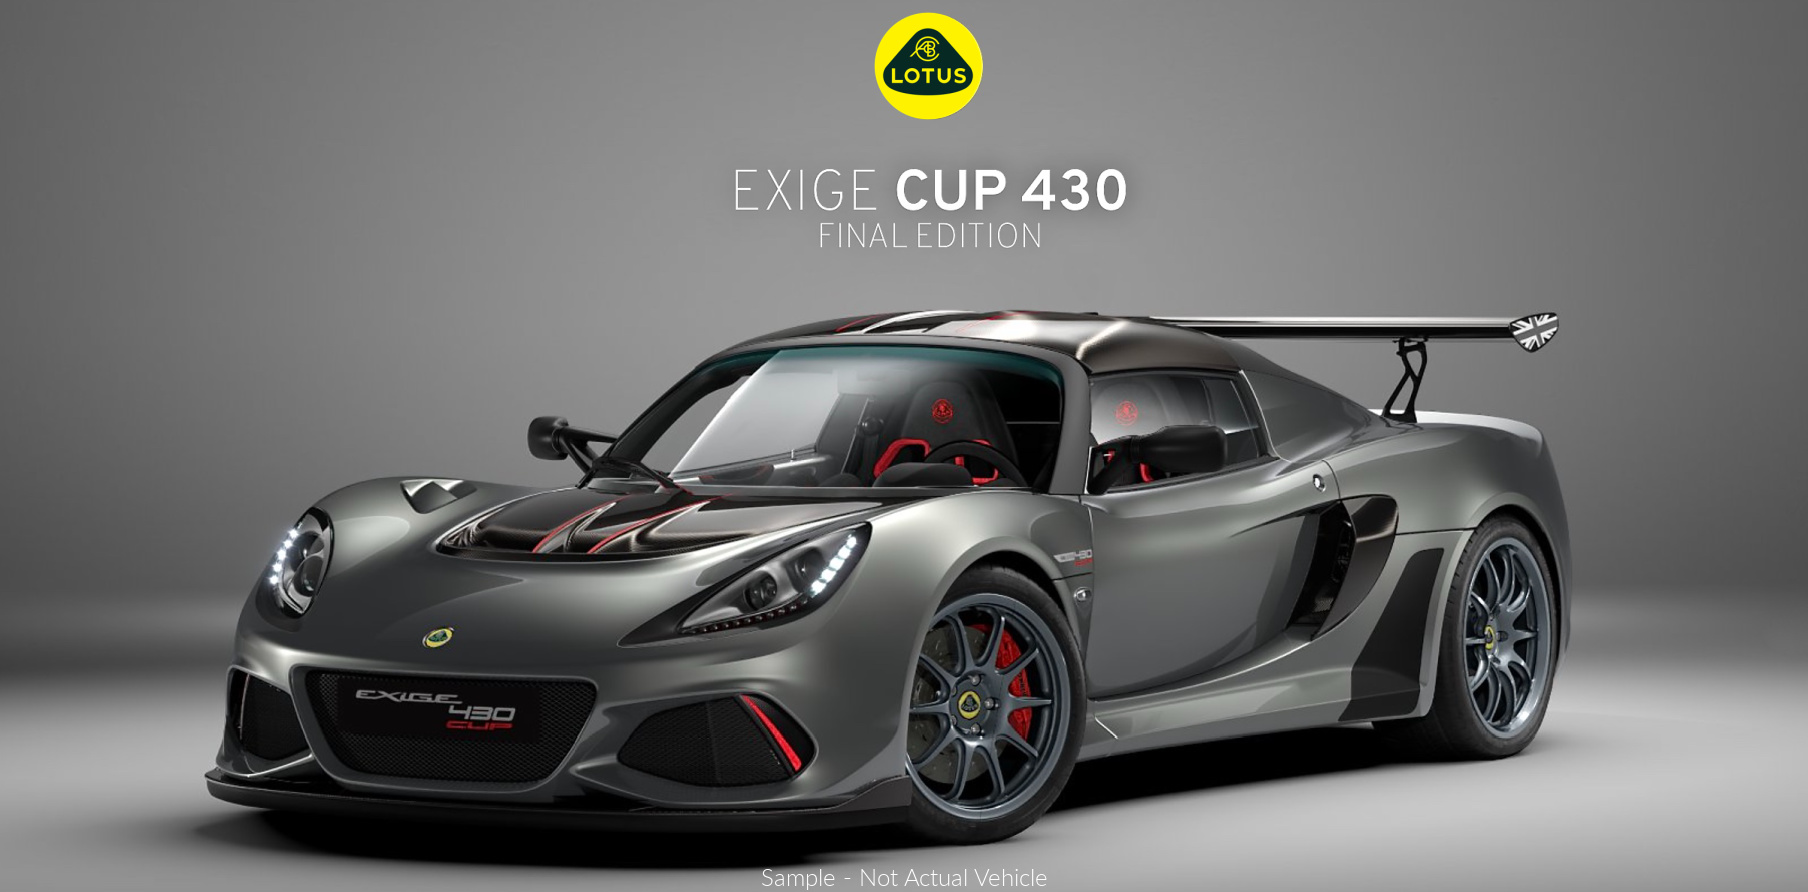 2021 Lotus Exige Cup 430 Final Edition for sale Perth